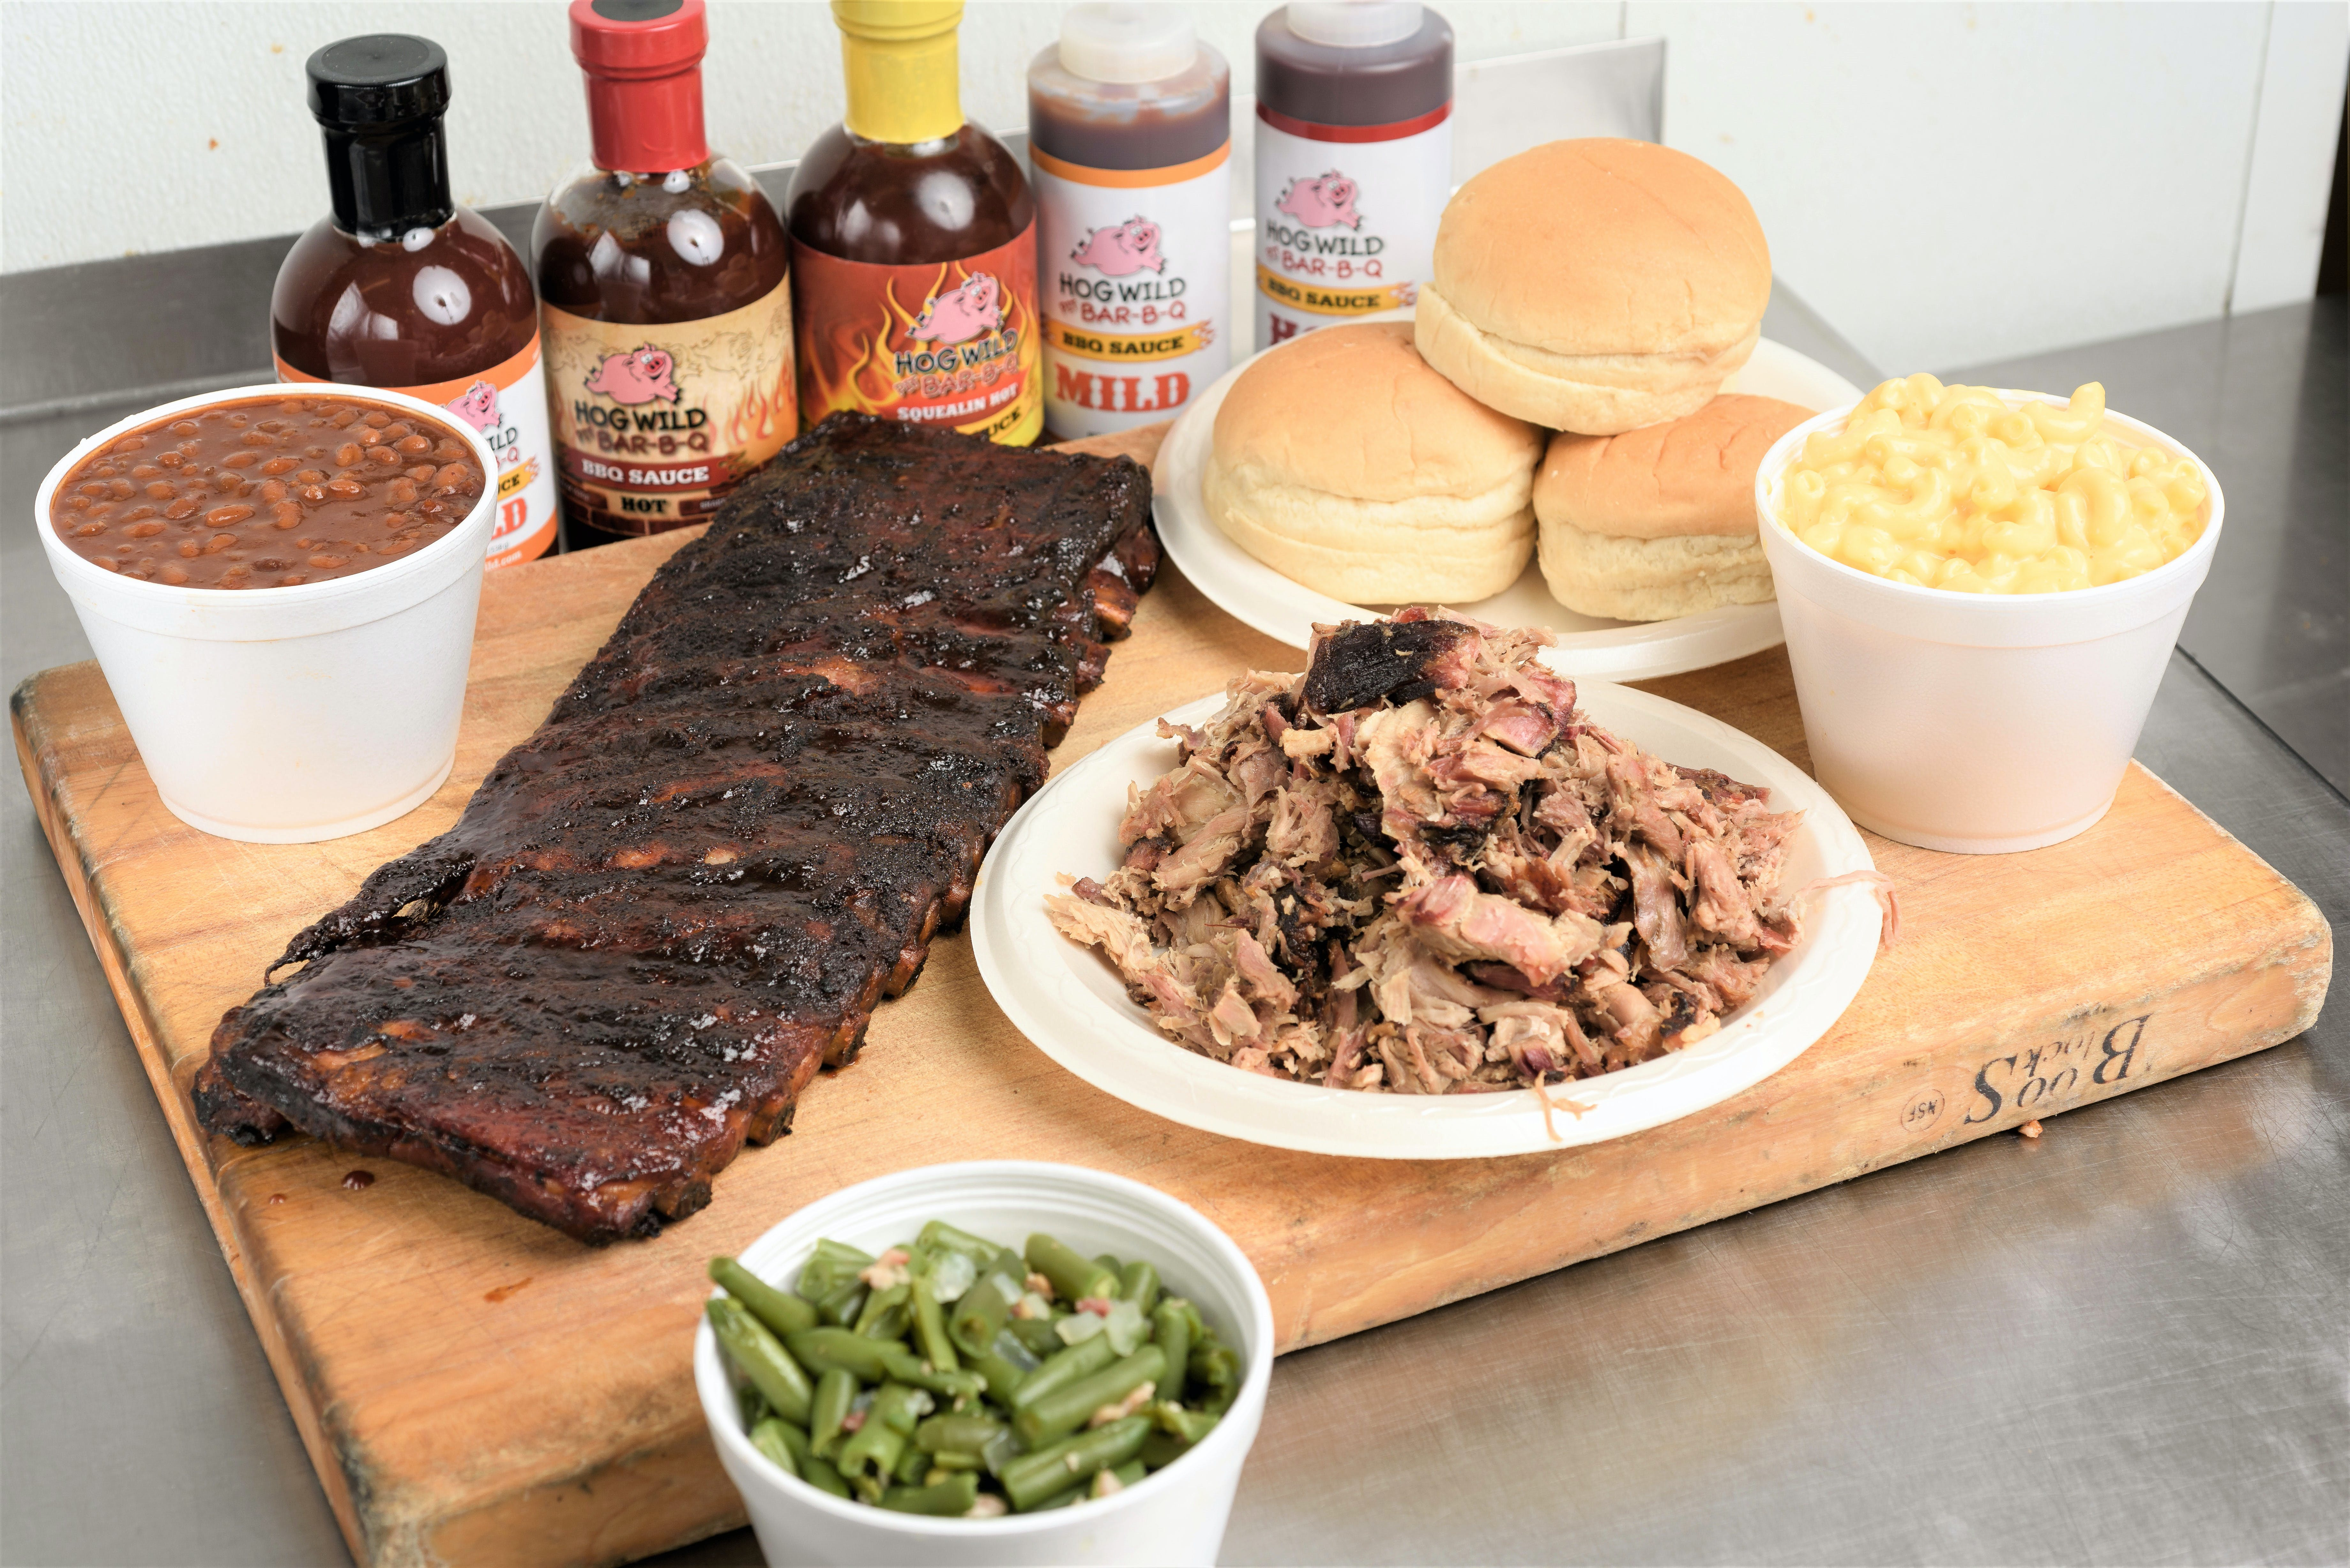 Family Feast from Hog Wild Pit BBQ & Catering in Lawrence, KS